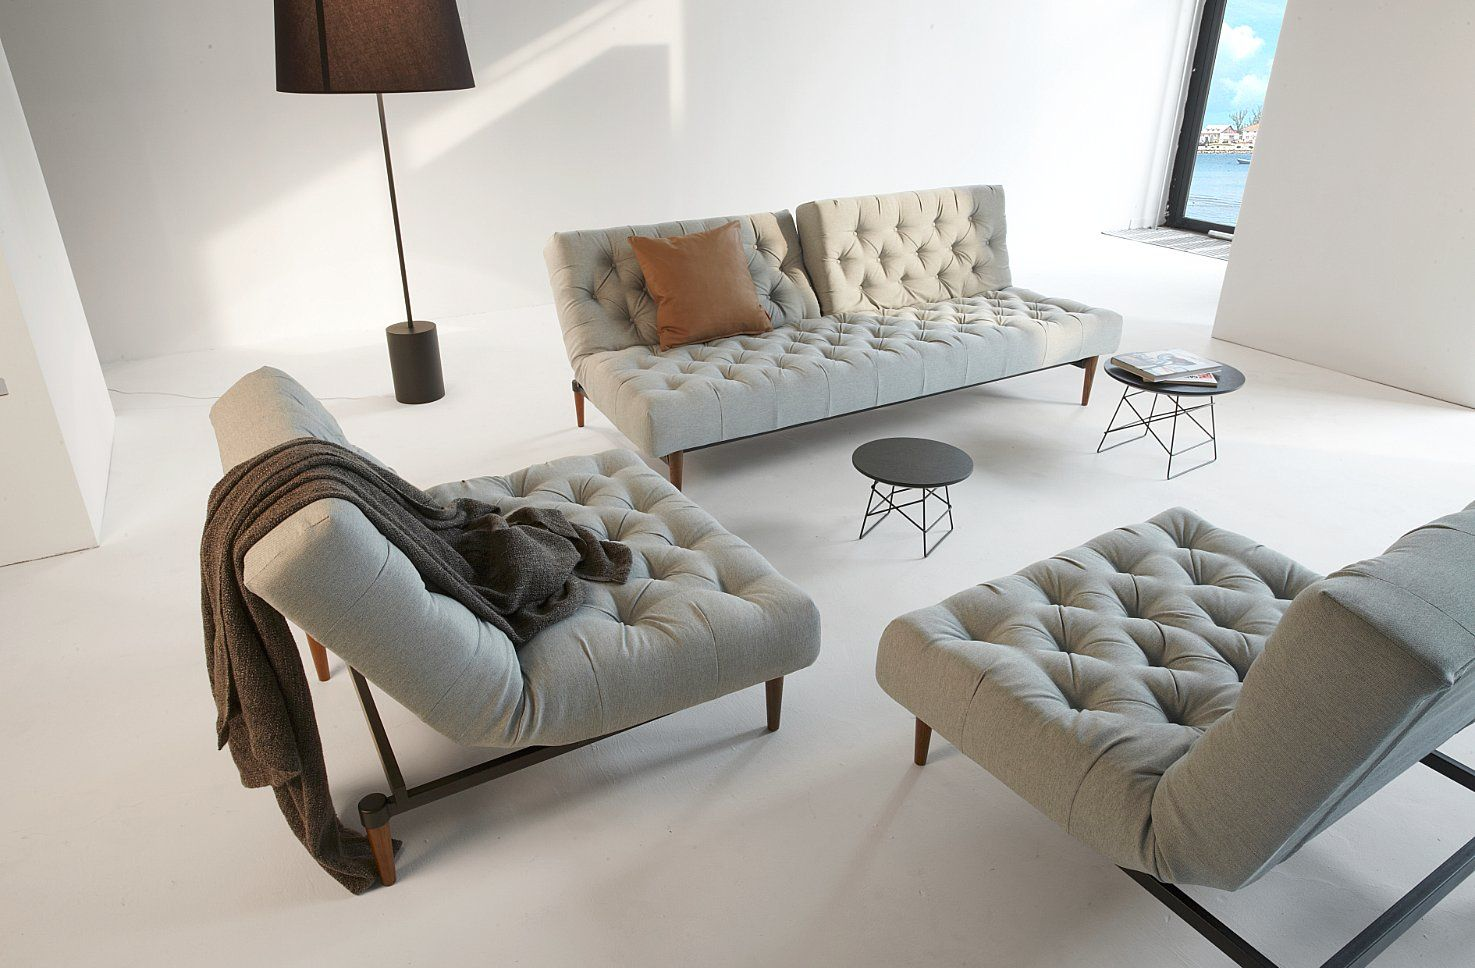 Divano Letto E Poltrona.Divano Letto E Poltrona Pouf Oldschool Tessuto Soft Pacific Pearl